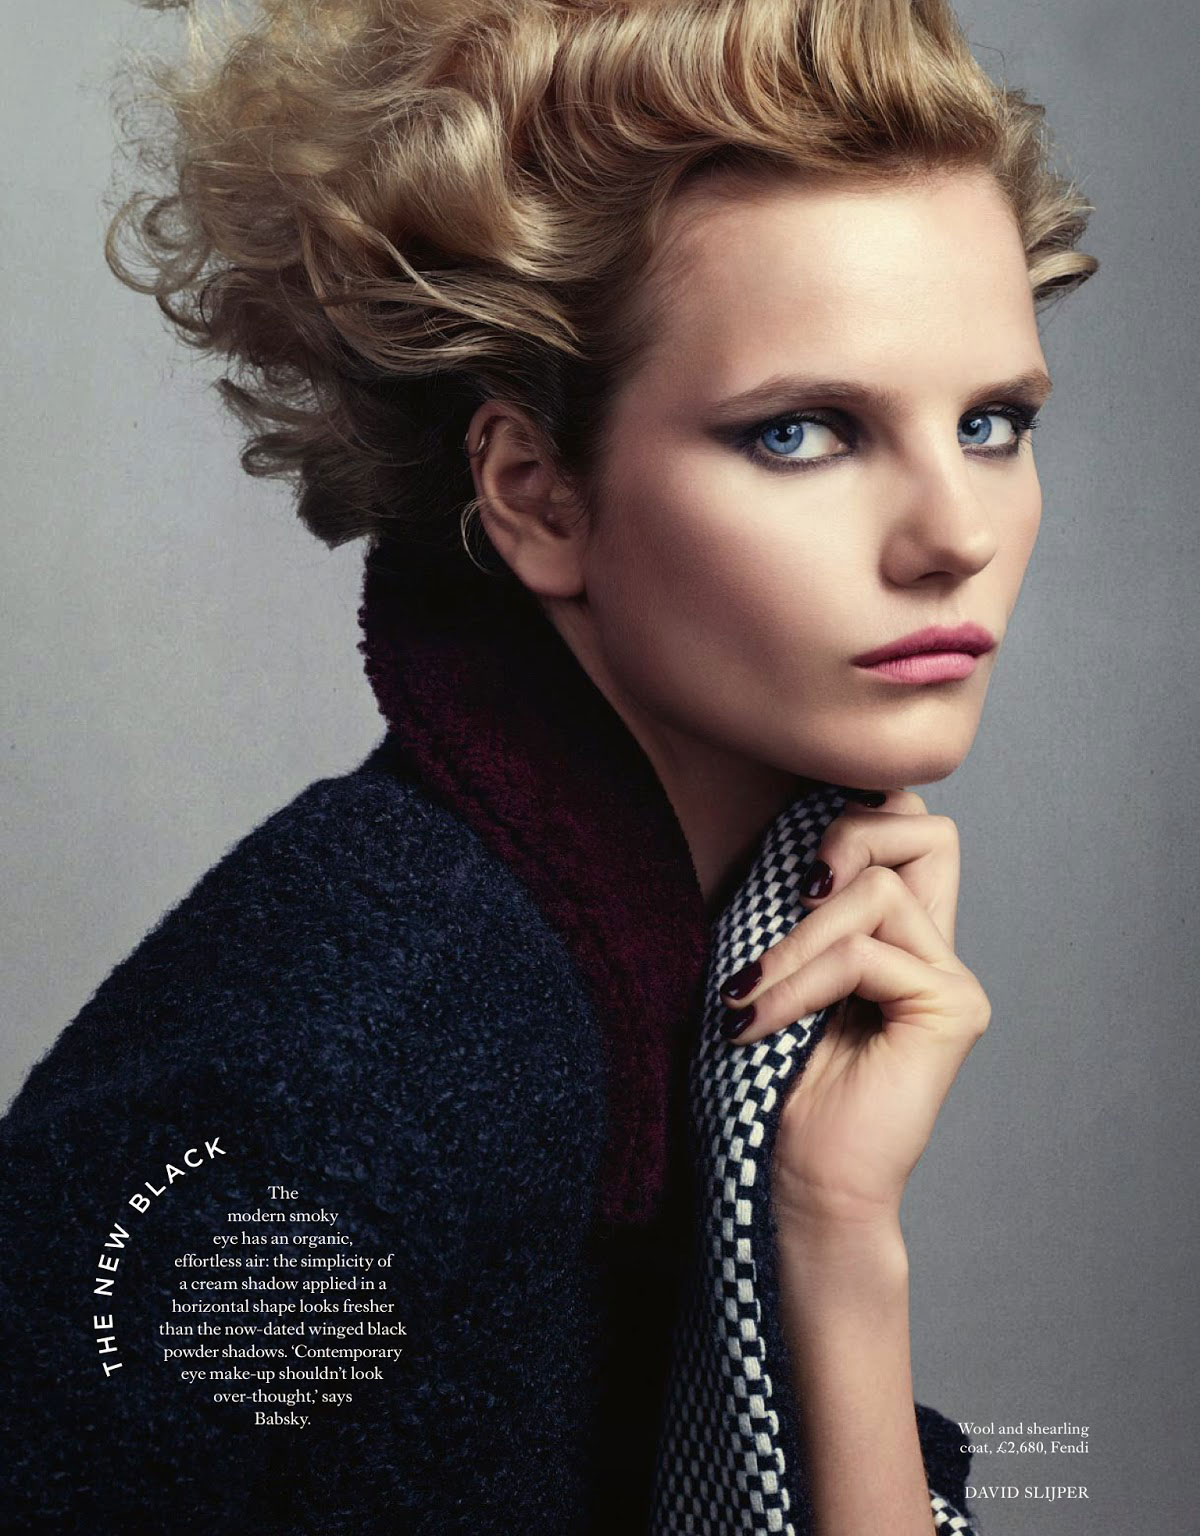 Anmarie-Botha-by-David-Slijper-for-Harpers-Bazaar-UK-October-2014-2